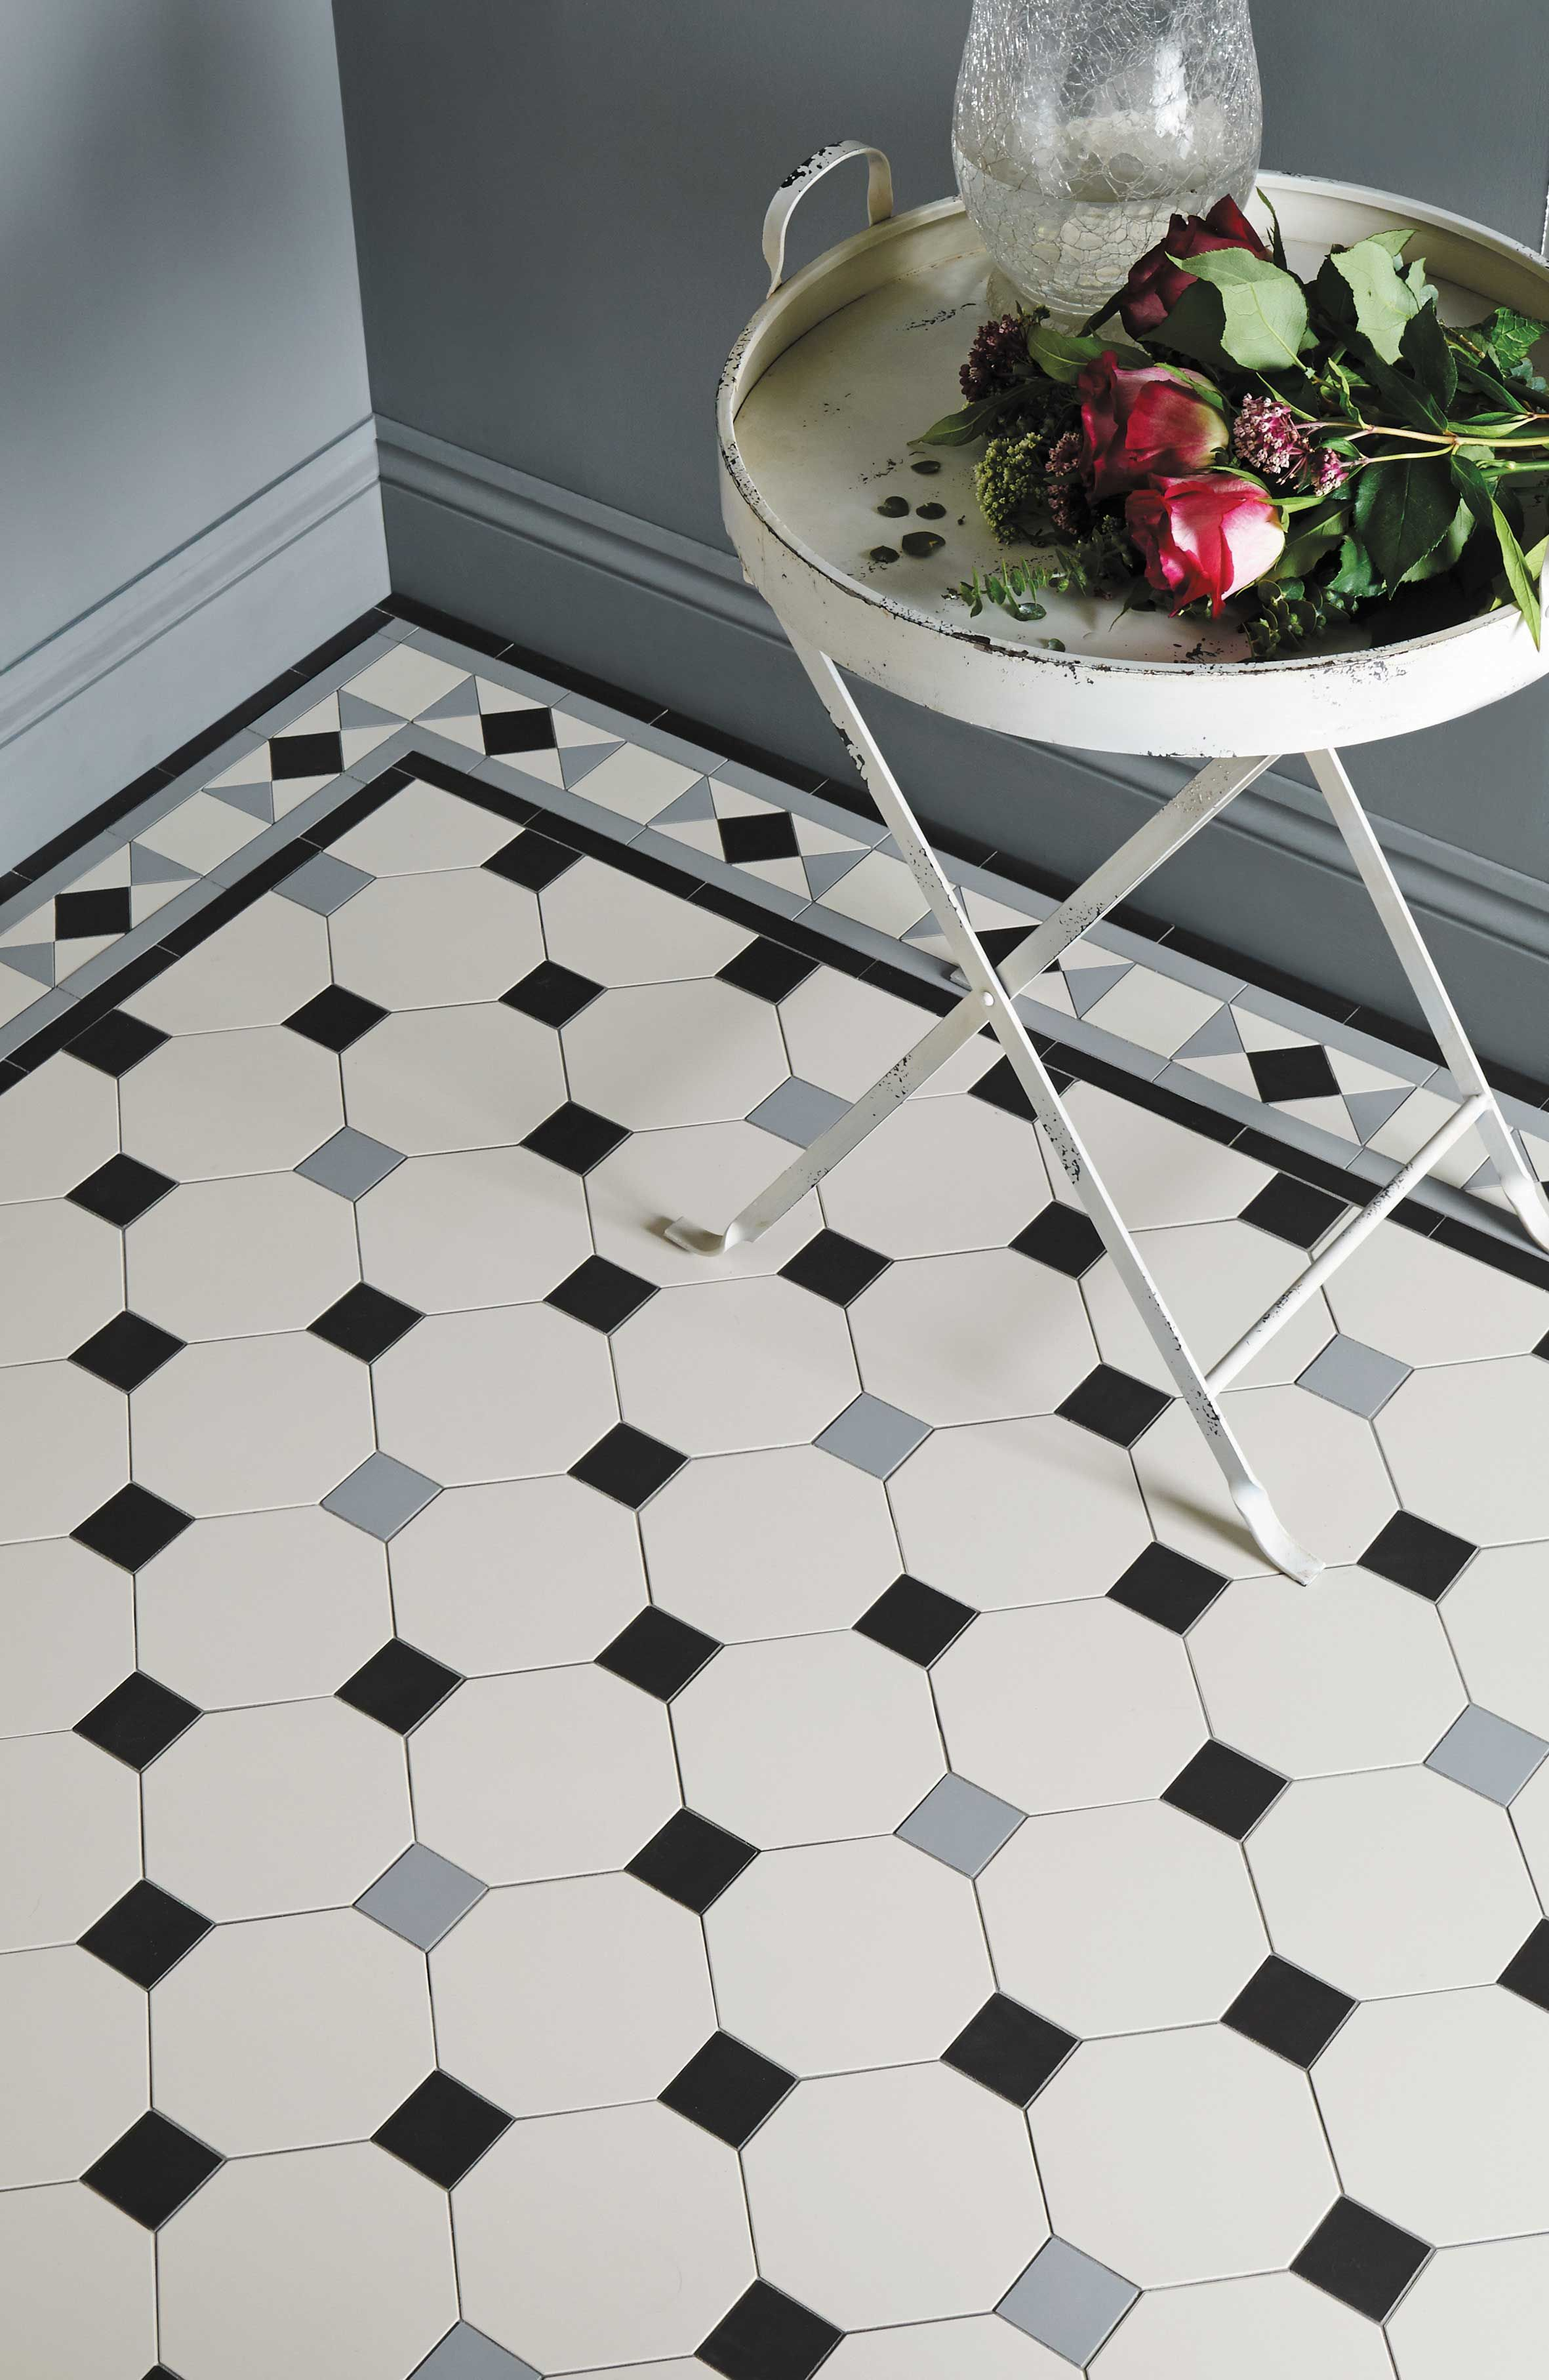 Victorian floor tiles by original style conrad border with victorian floor tiles by original style conrad border with nottingham pattern dailygadgetfo Images